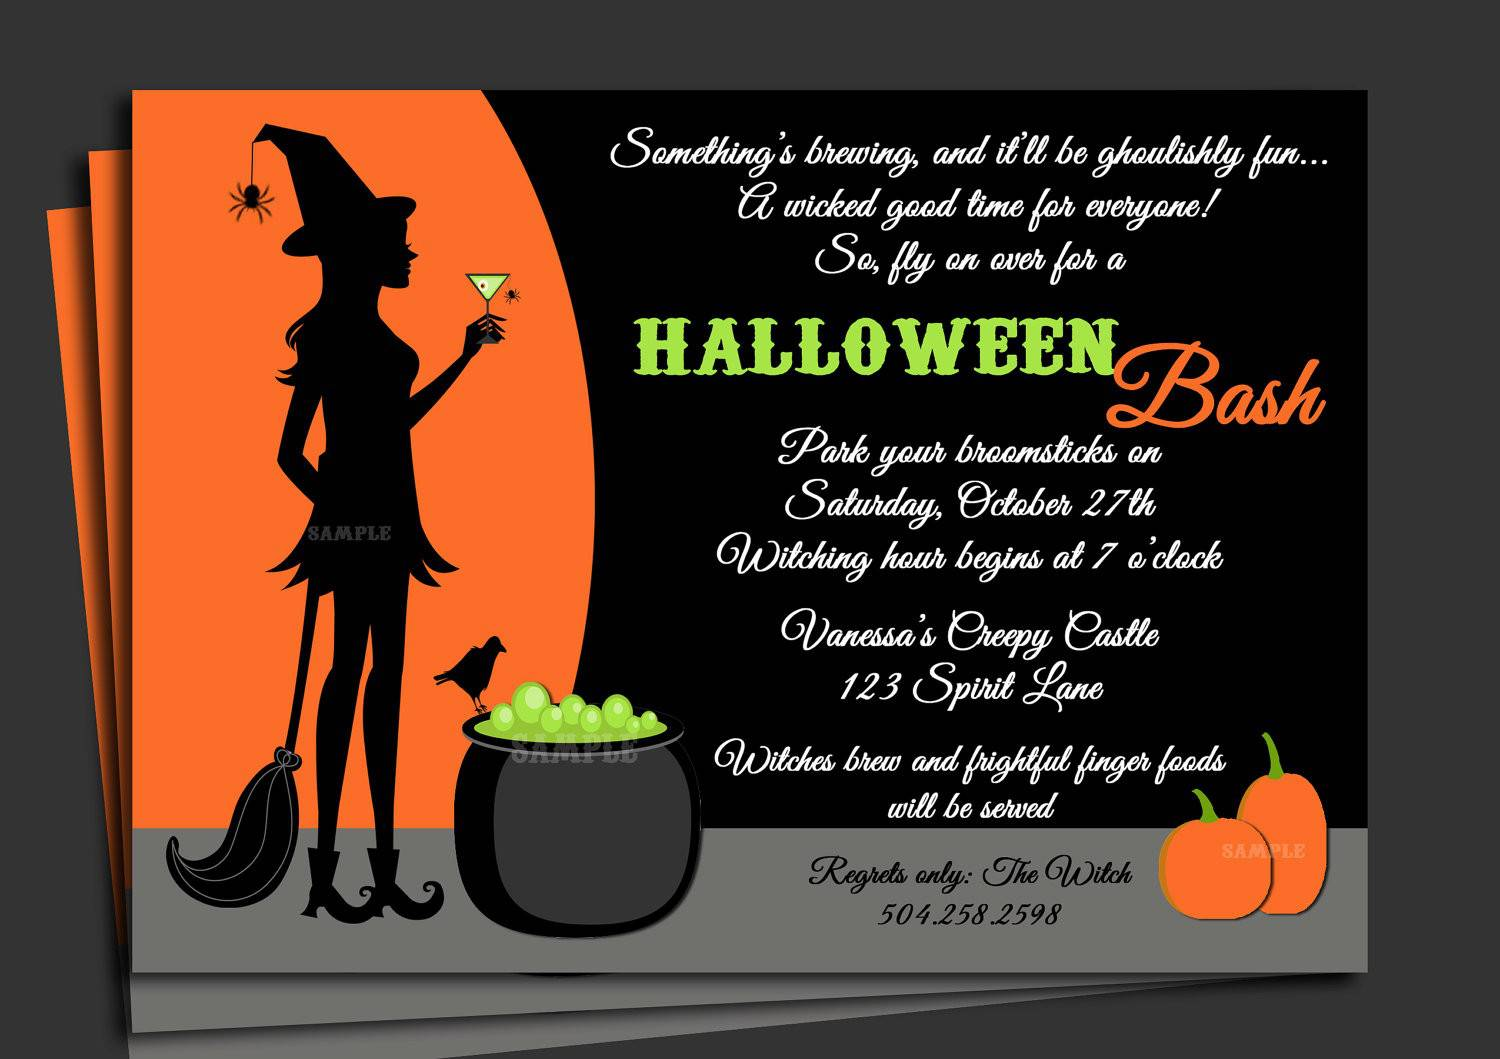 Costume Party Invitation Wording Ideas About Costume Party